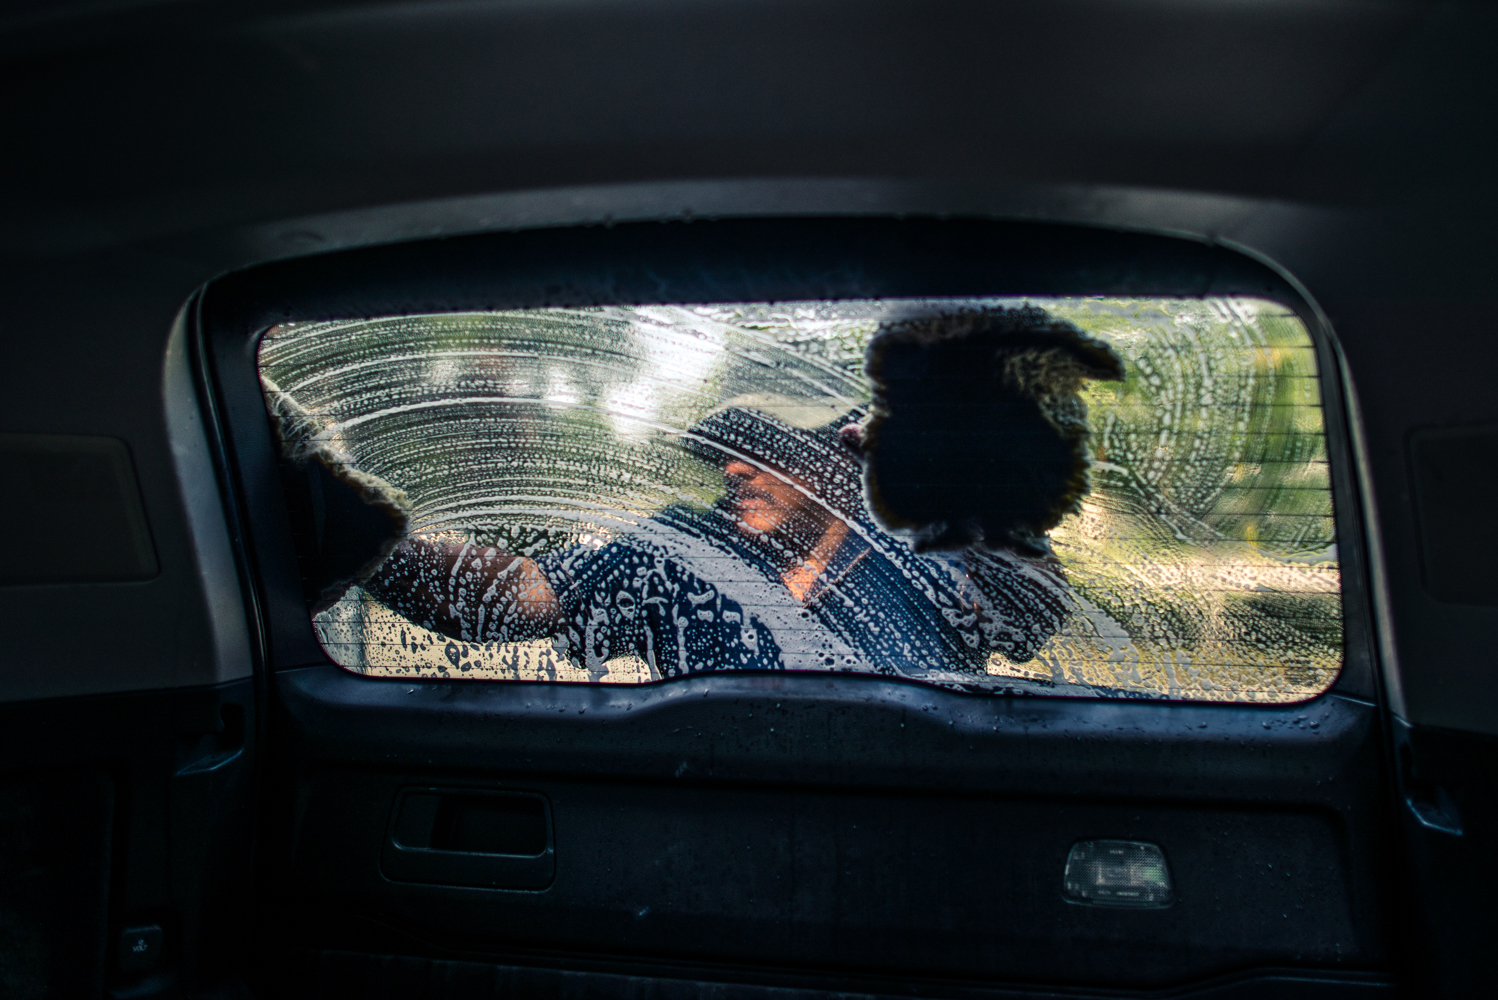 Durham, North Carolina, 2018José washes cars in the church parking lot make money to support himself and his family.  The financial burden of having a family member ins sanctuary is significant.